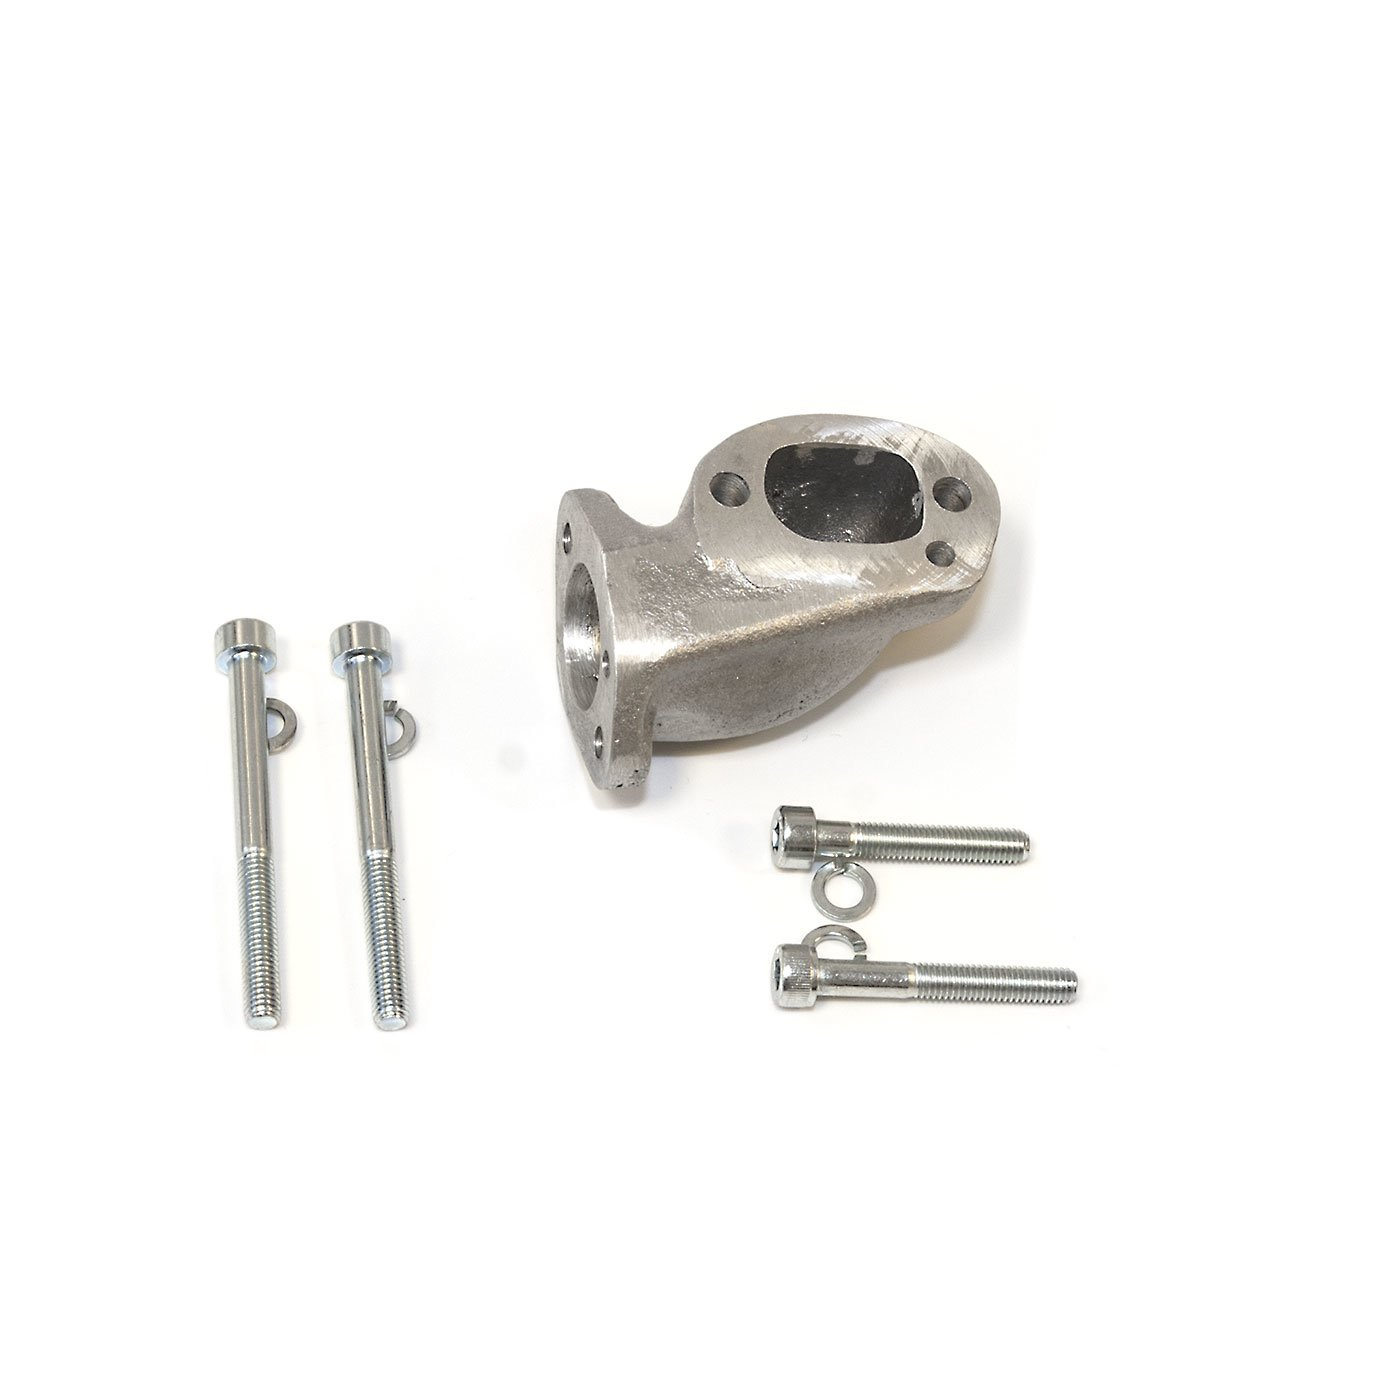 Flat version carb bend for the ZG 62